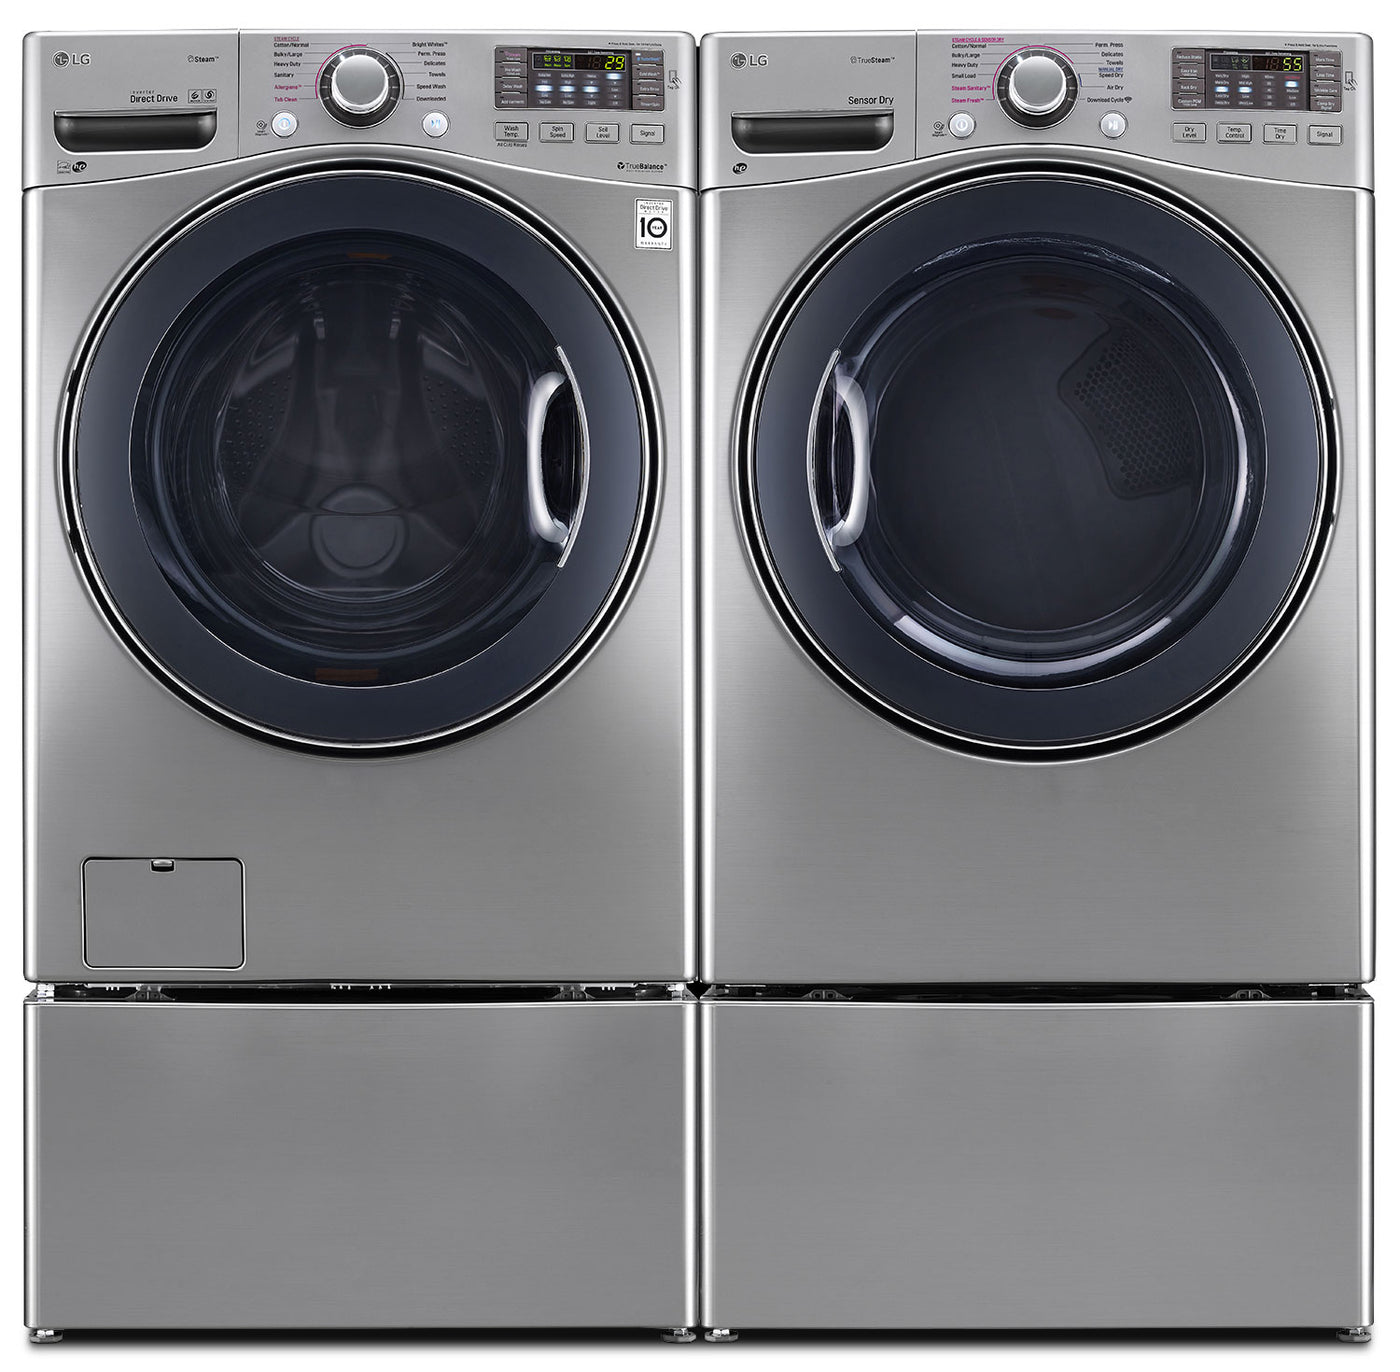 LG 5 2 Cu  Ft  Front-Load Washer and 7 4 Cu  Ft  Electric Steam Dryer –  Graphite Steel